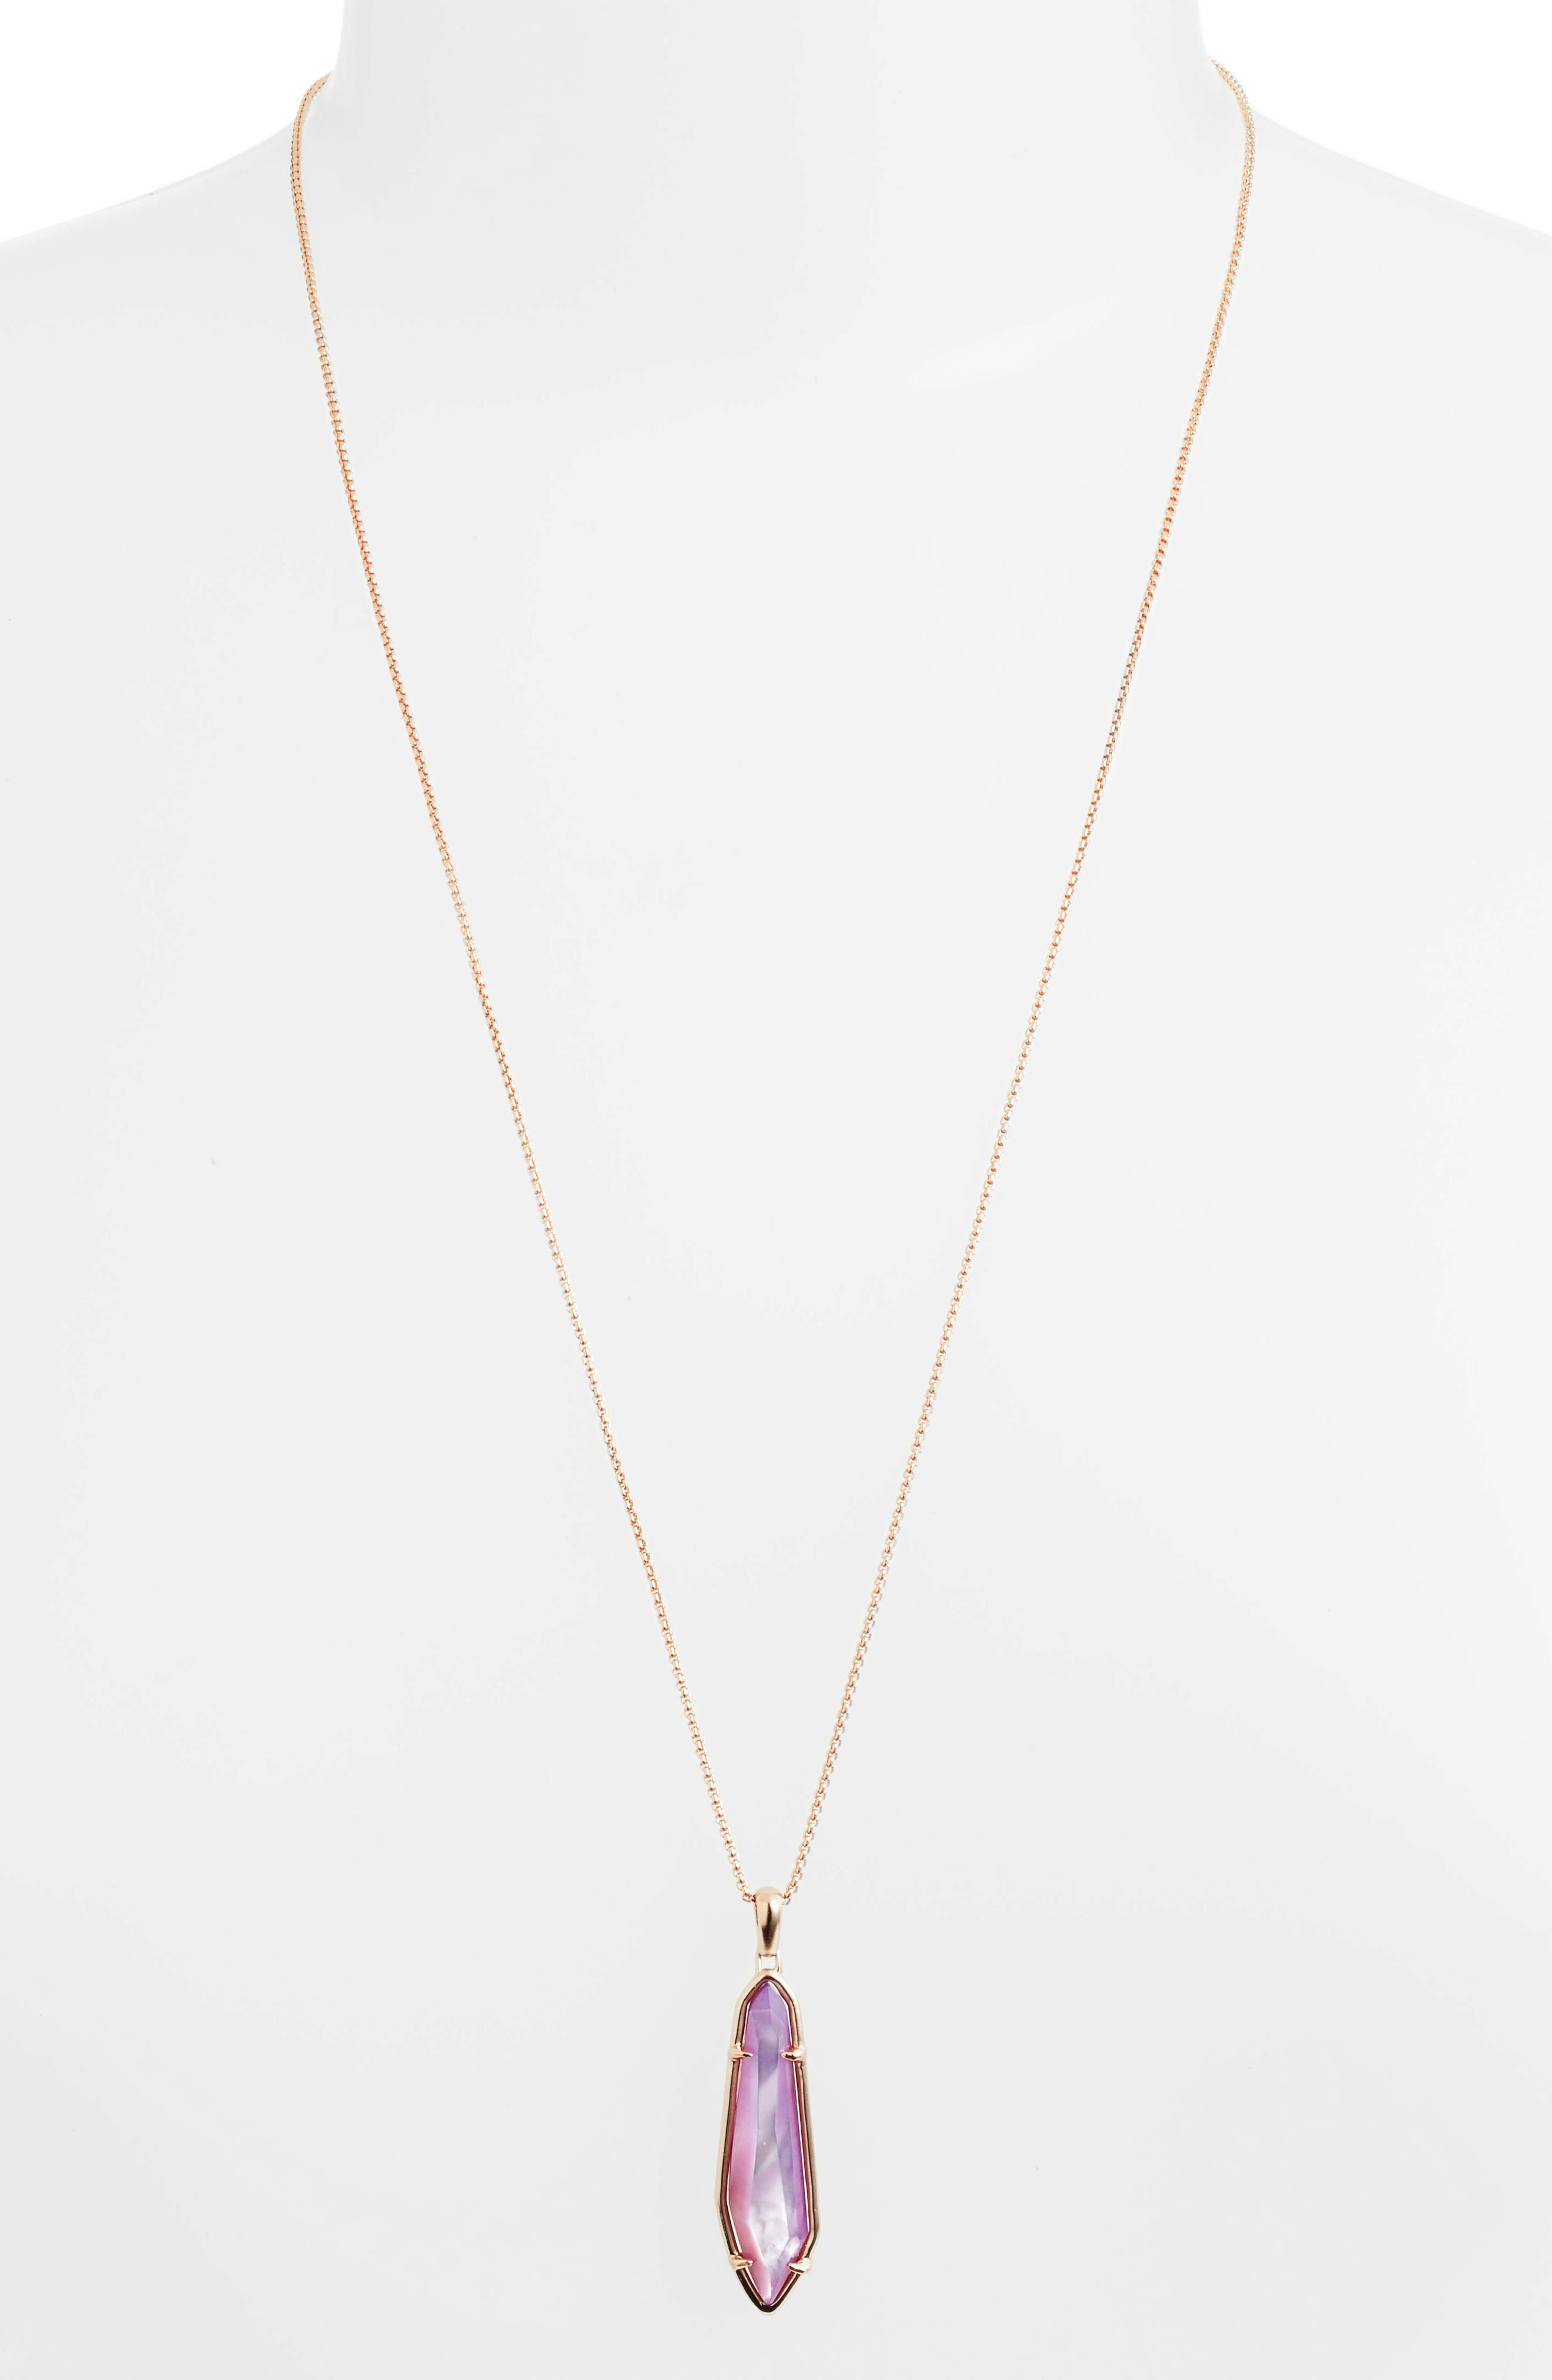 Cassidy Stone Necklace,                         Main,                         color, Lilac Mop/ Rose Gold